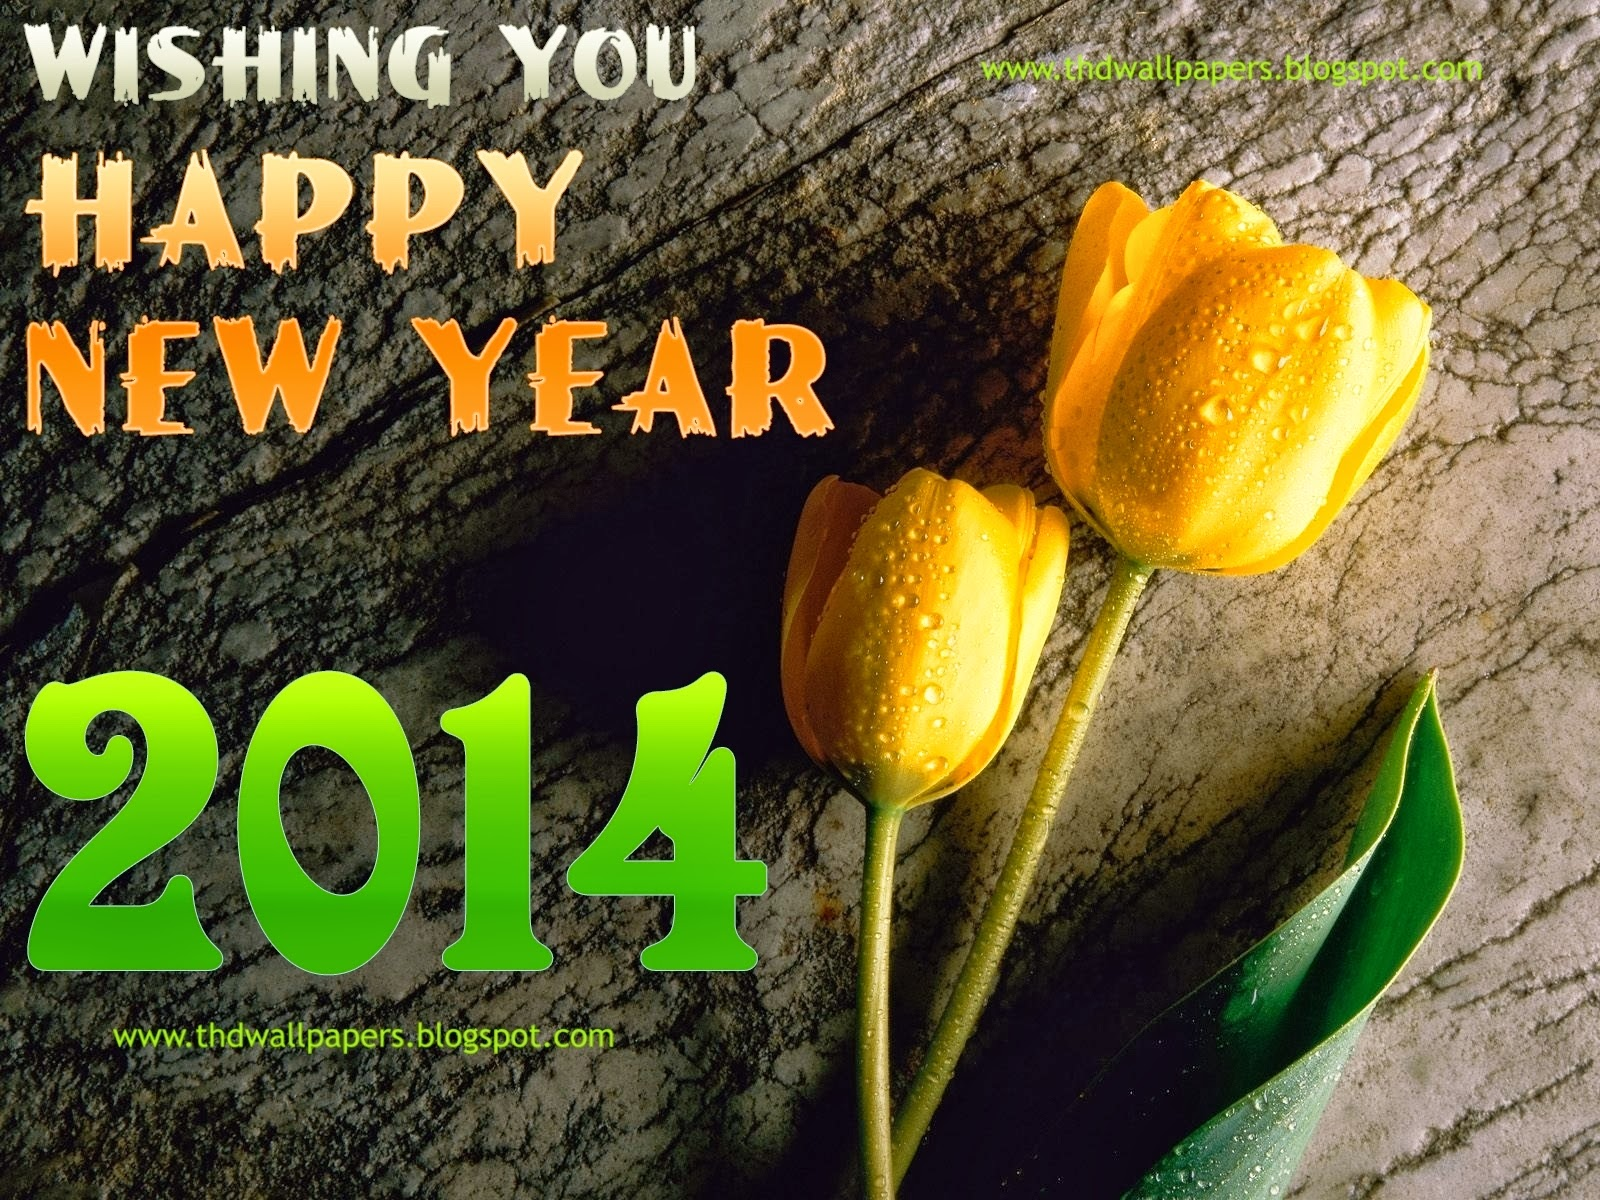 happy new year 2014 wallpaper free download